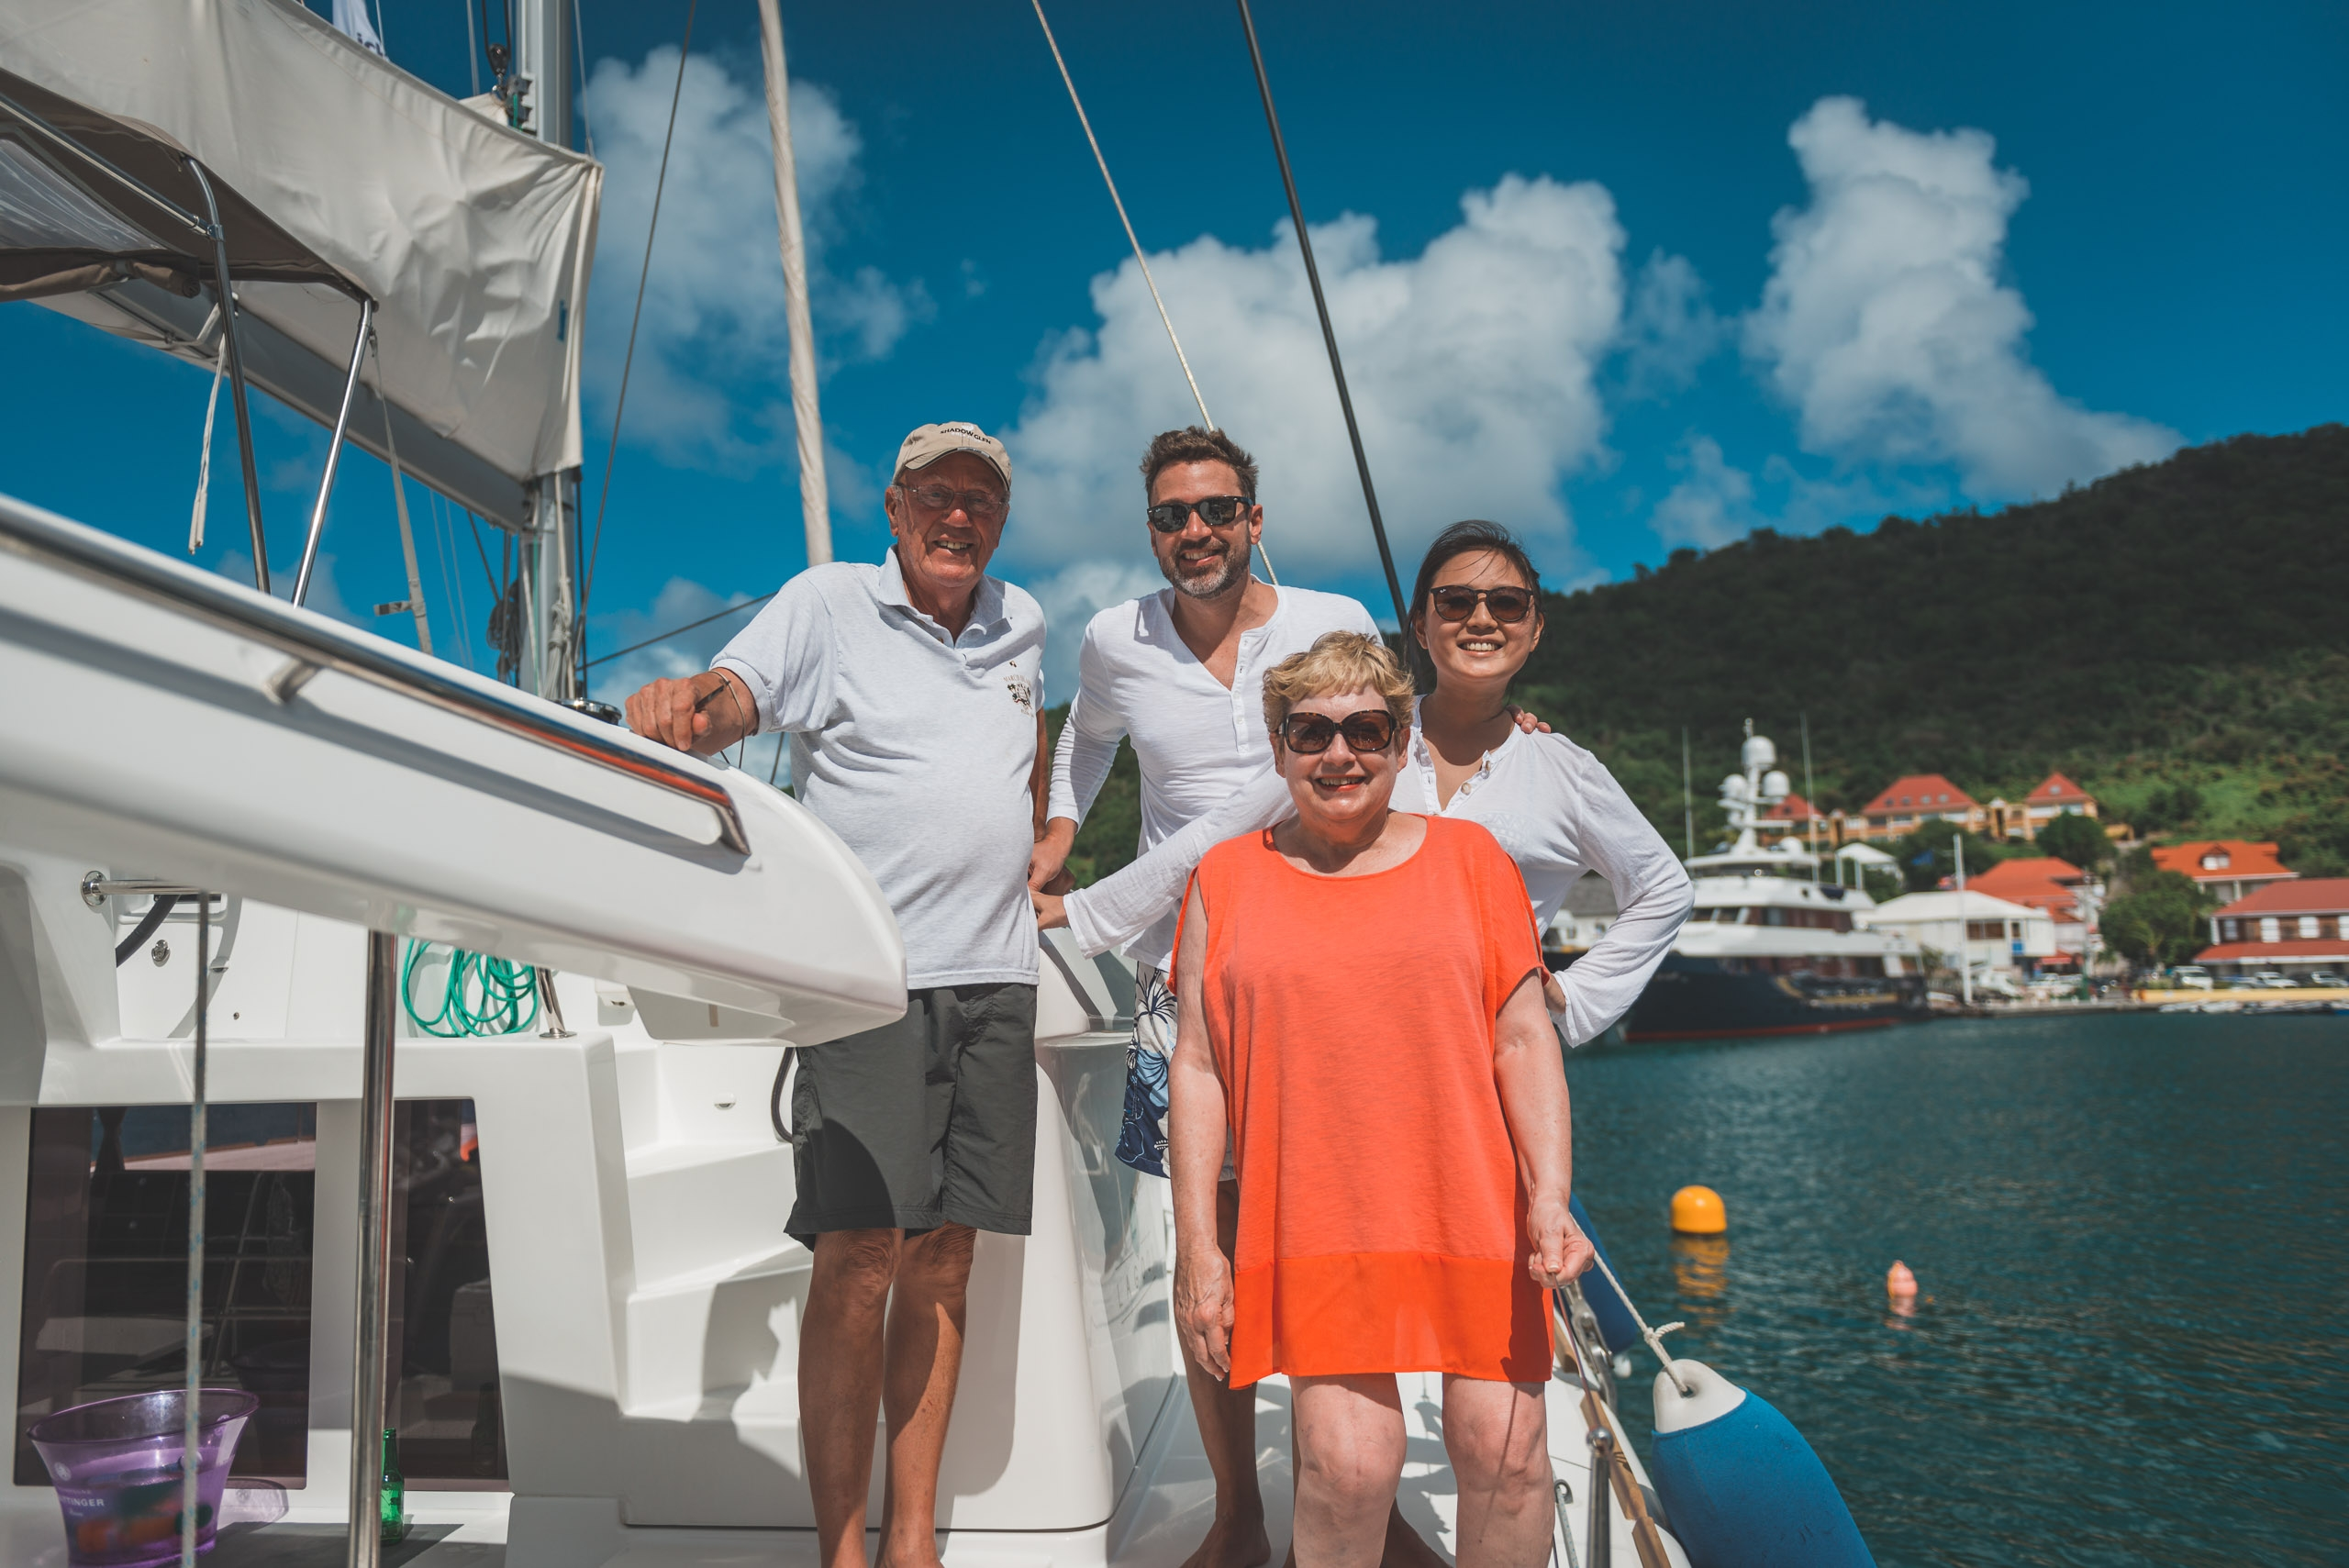 The Whole Crew at Gustavia Harbor